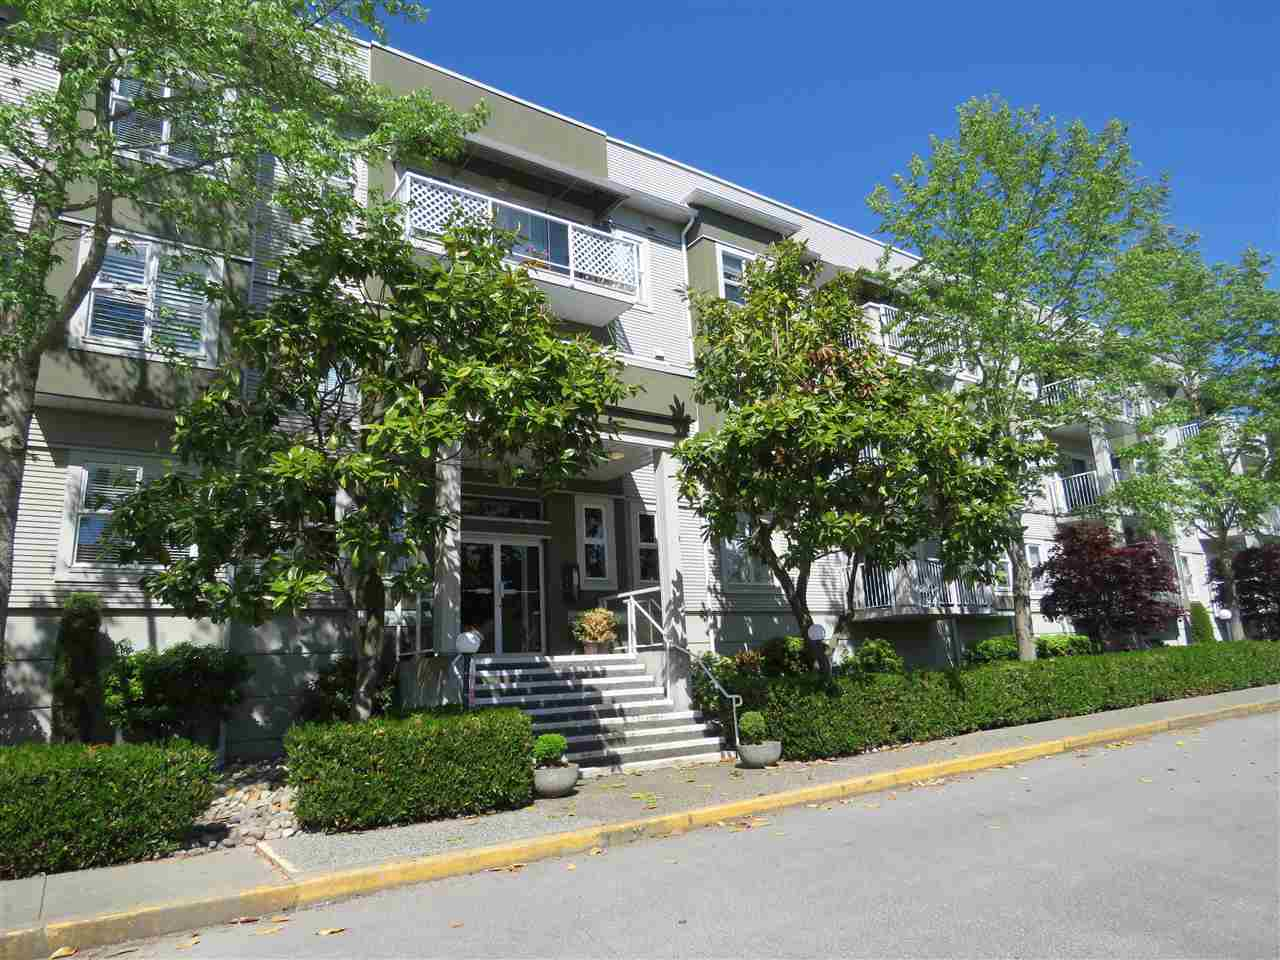 "Main Photo: 112 4738 53 Street in Delta: Delta Manor Condo for sale in ""SUNNINGDALE ESTATES"" (Ladner)  : MLS® # R2193673"